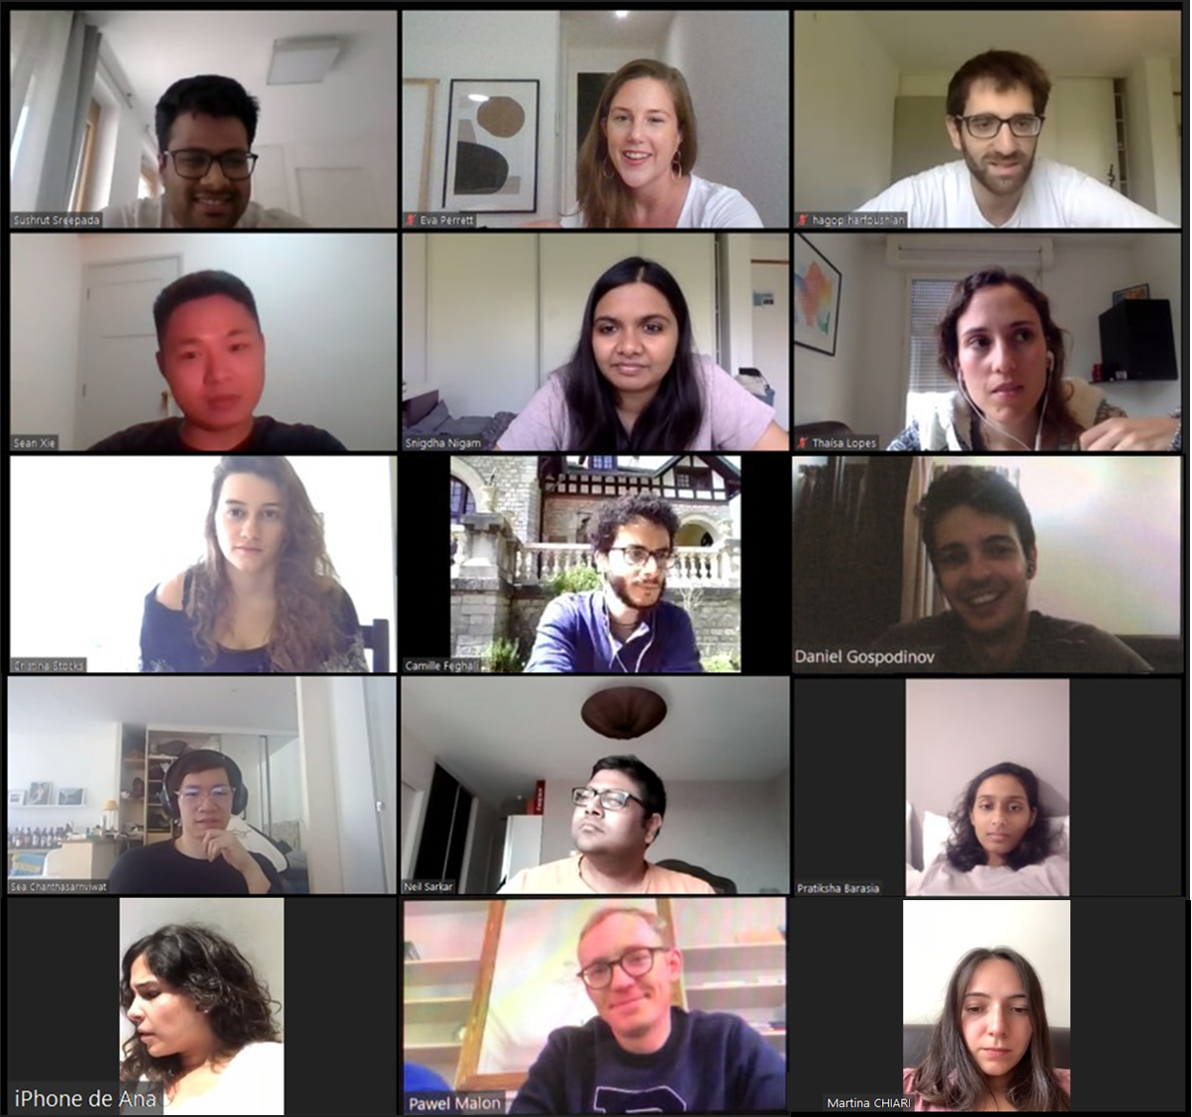 INSEAD 20J Section E1 reunion on Zoom (#Slyther1ns)